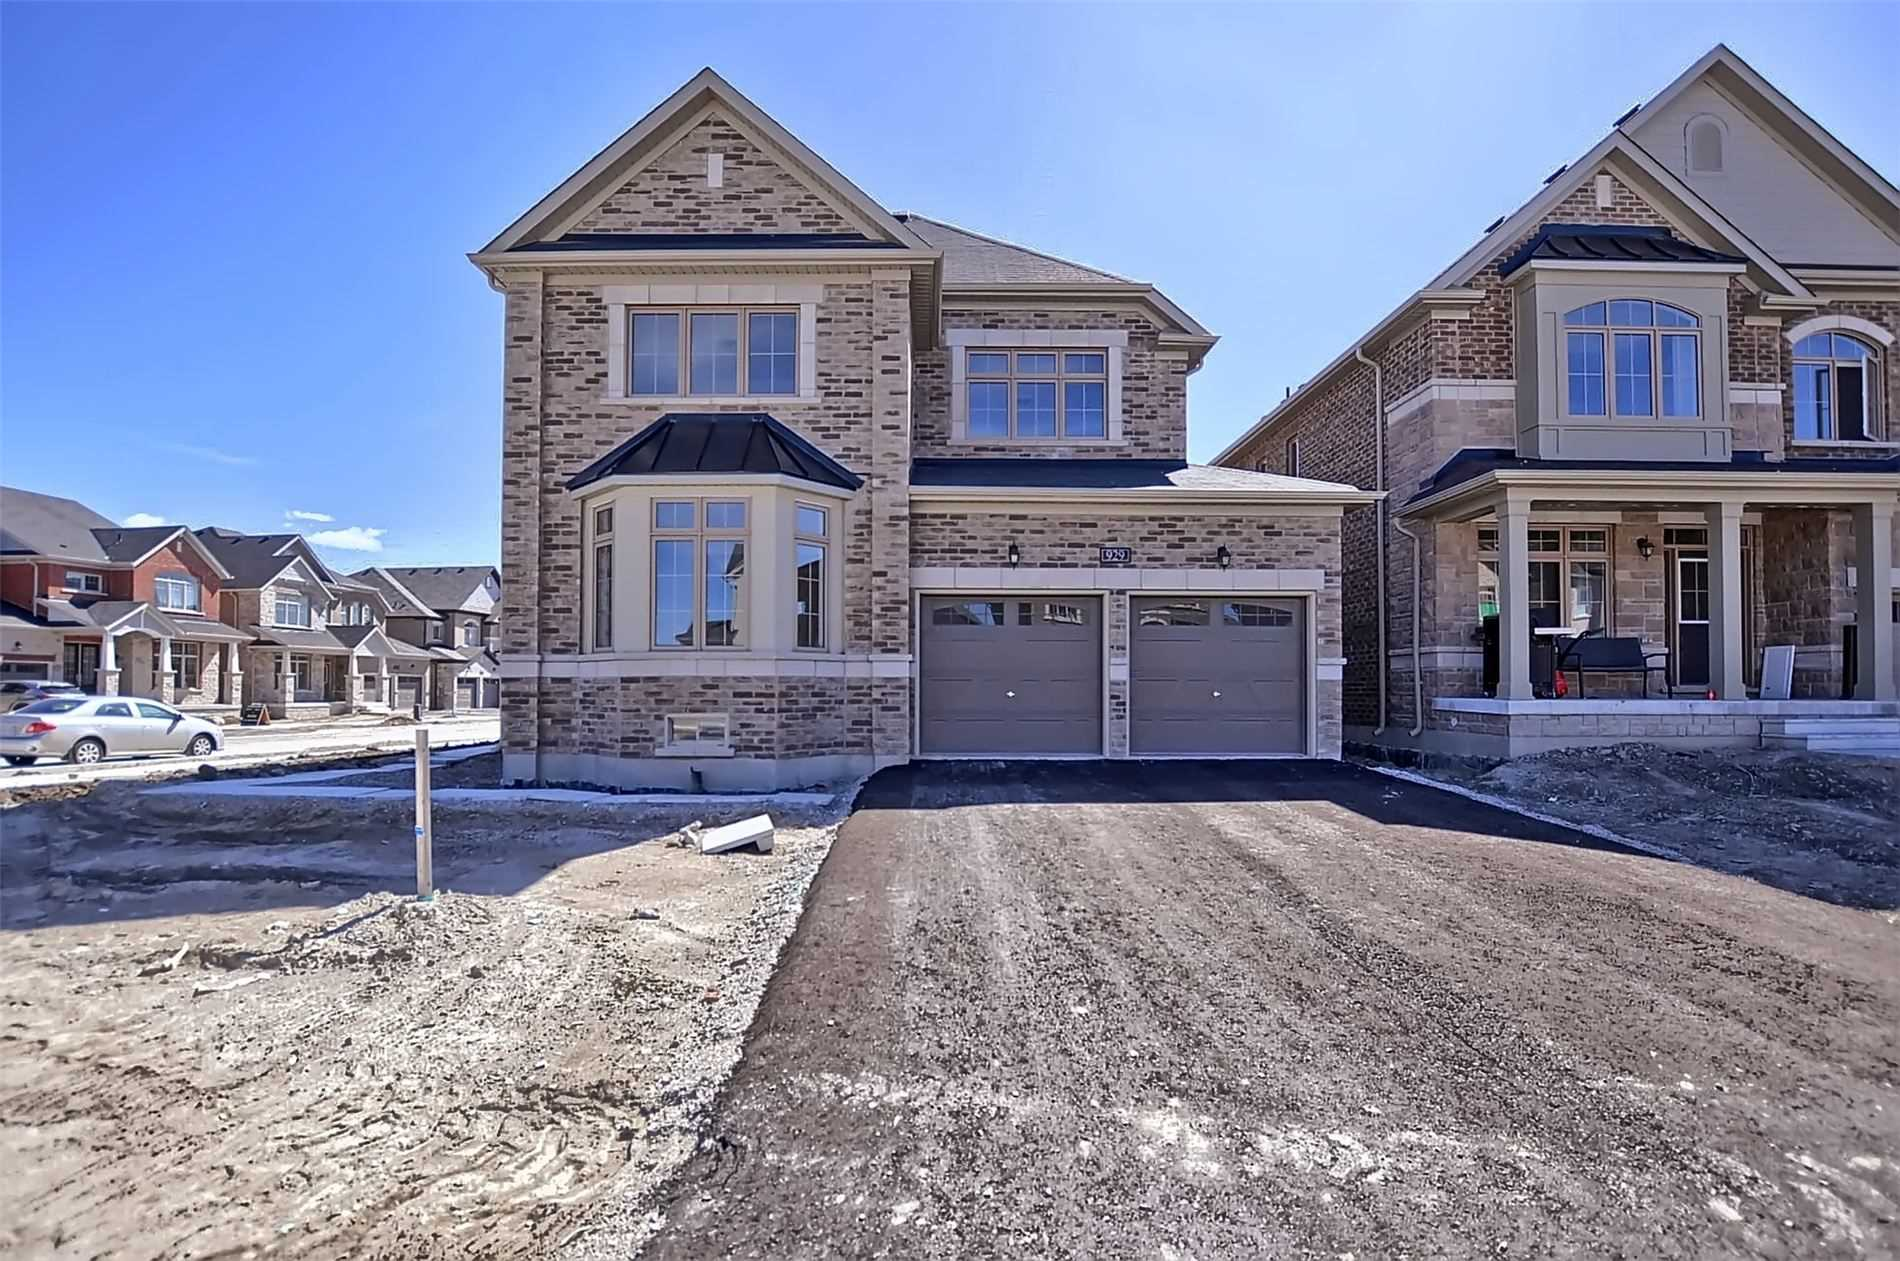 For Sale: 929 Wickham Road, Innisfil, ON | 4 Bed, 4 Bath House for $758888.00. See 20 photos!